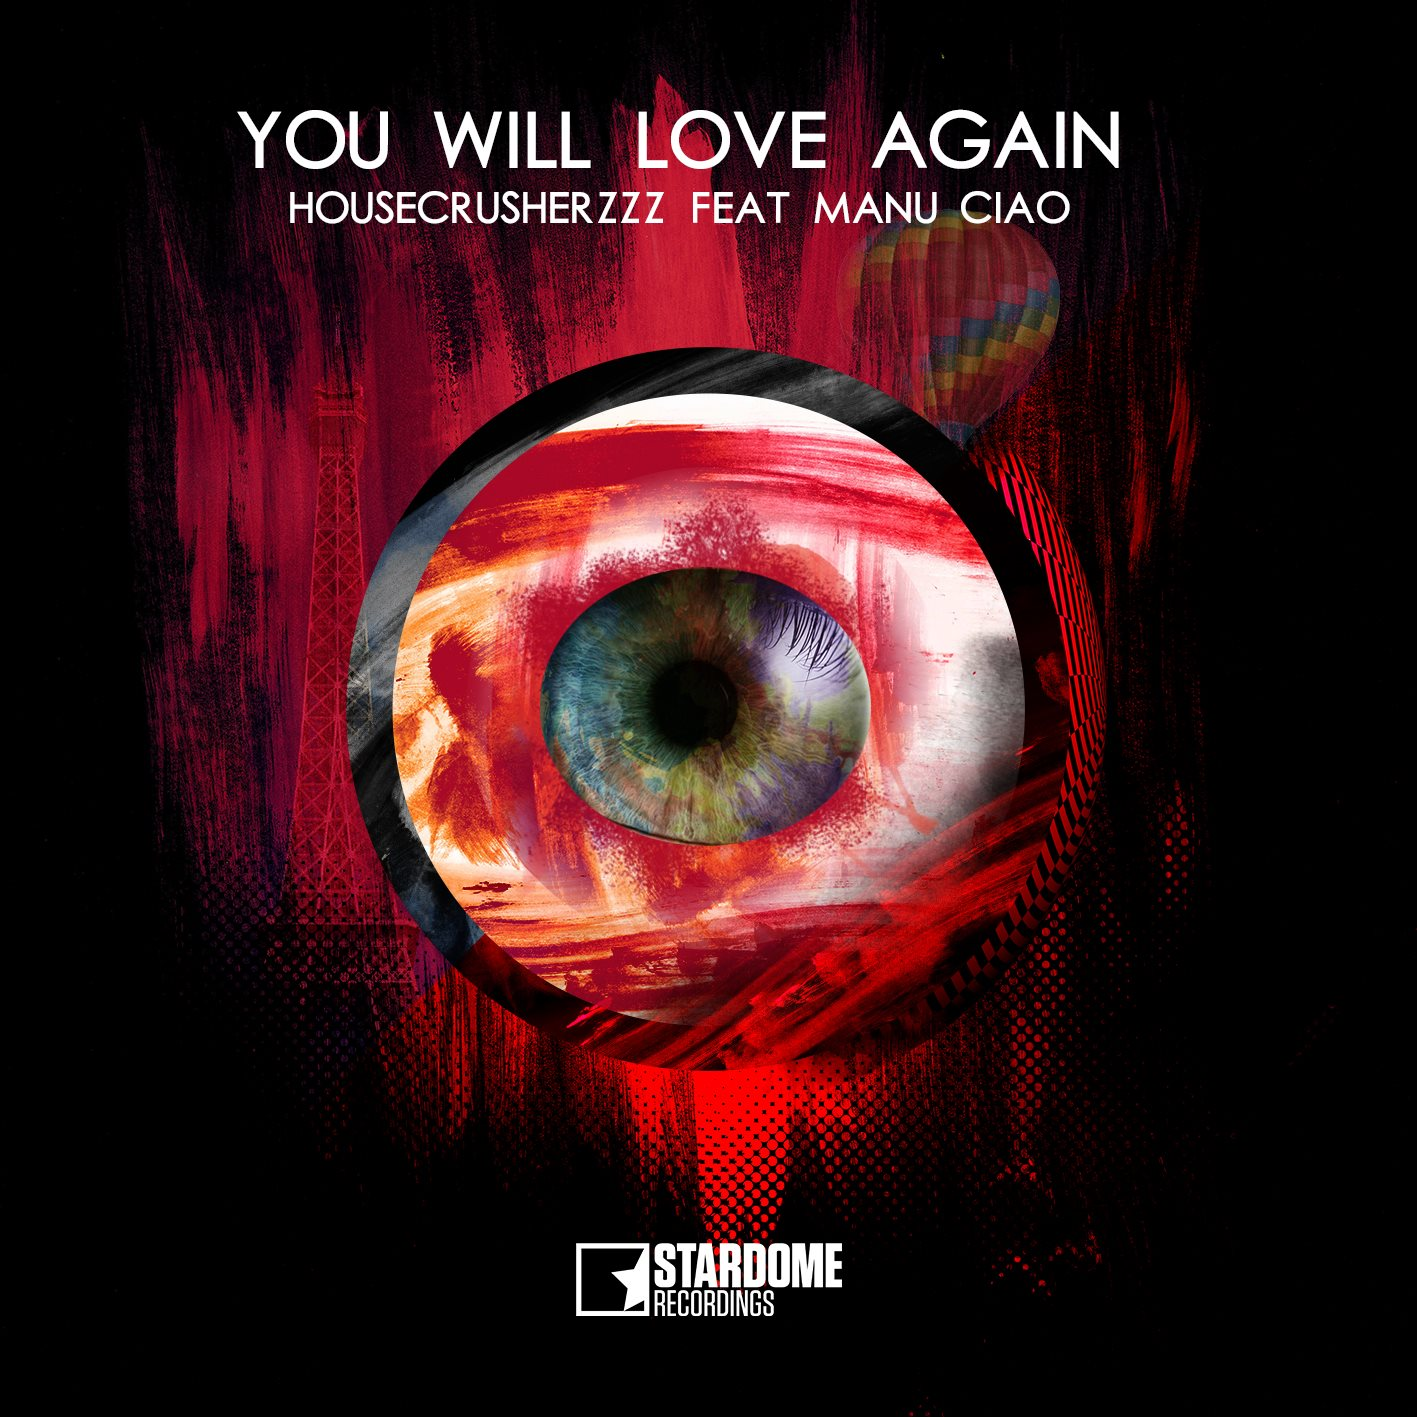 HOUSECRUSHERZZZ FEAT. MANU CIAO-You Will Love Again